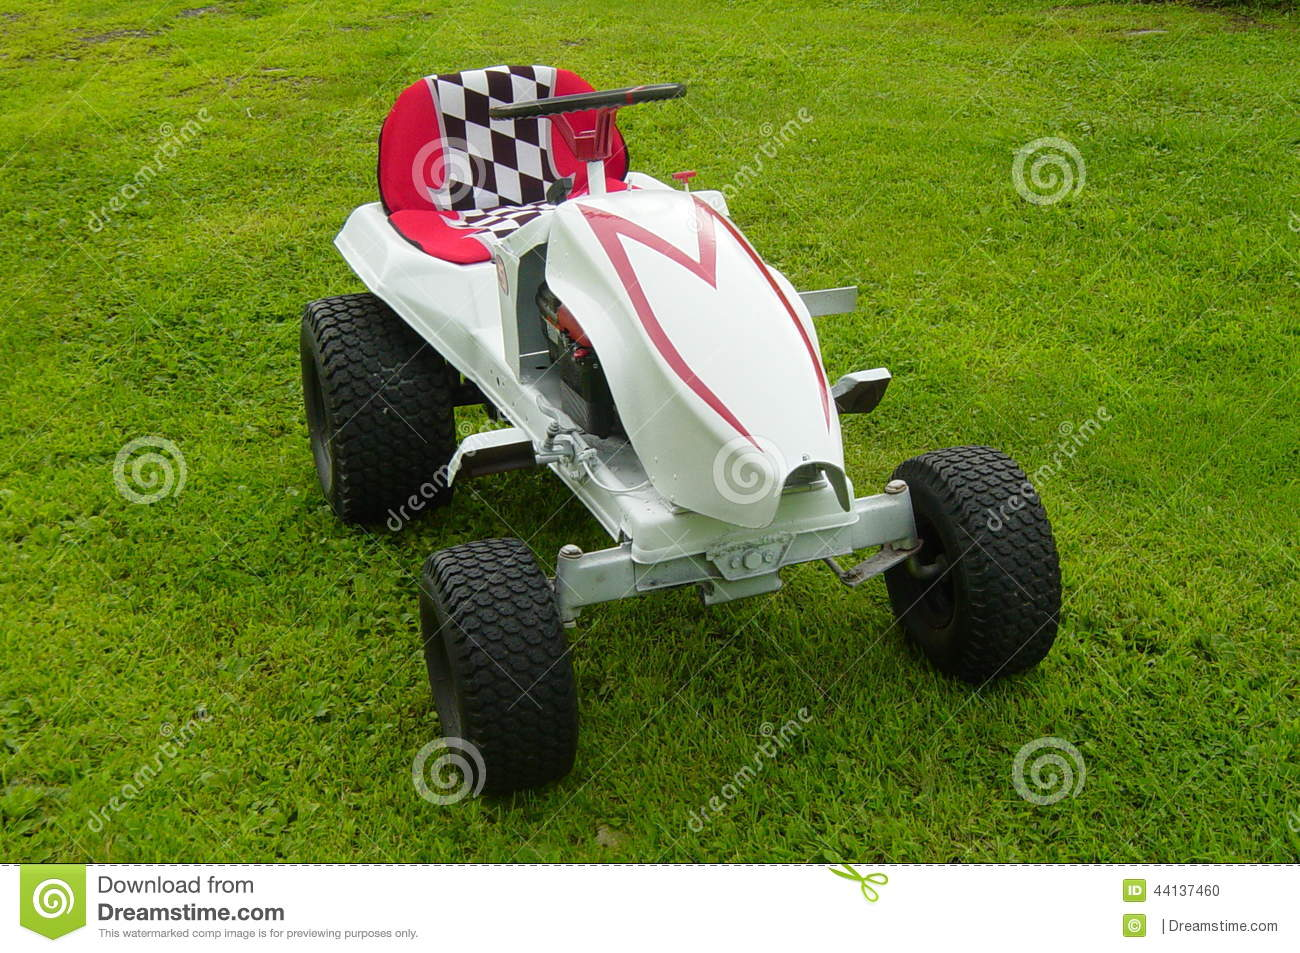 Custom Racing Tractors : Racing tractor parked on grass stock photo image of nice